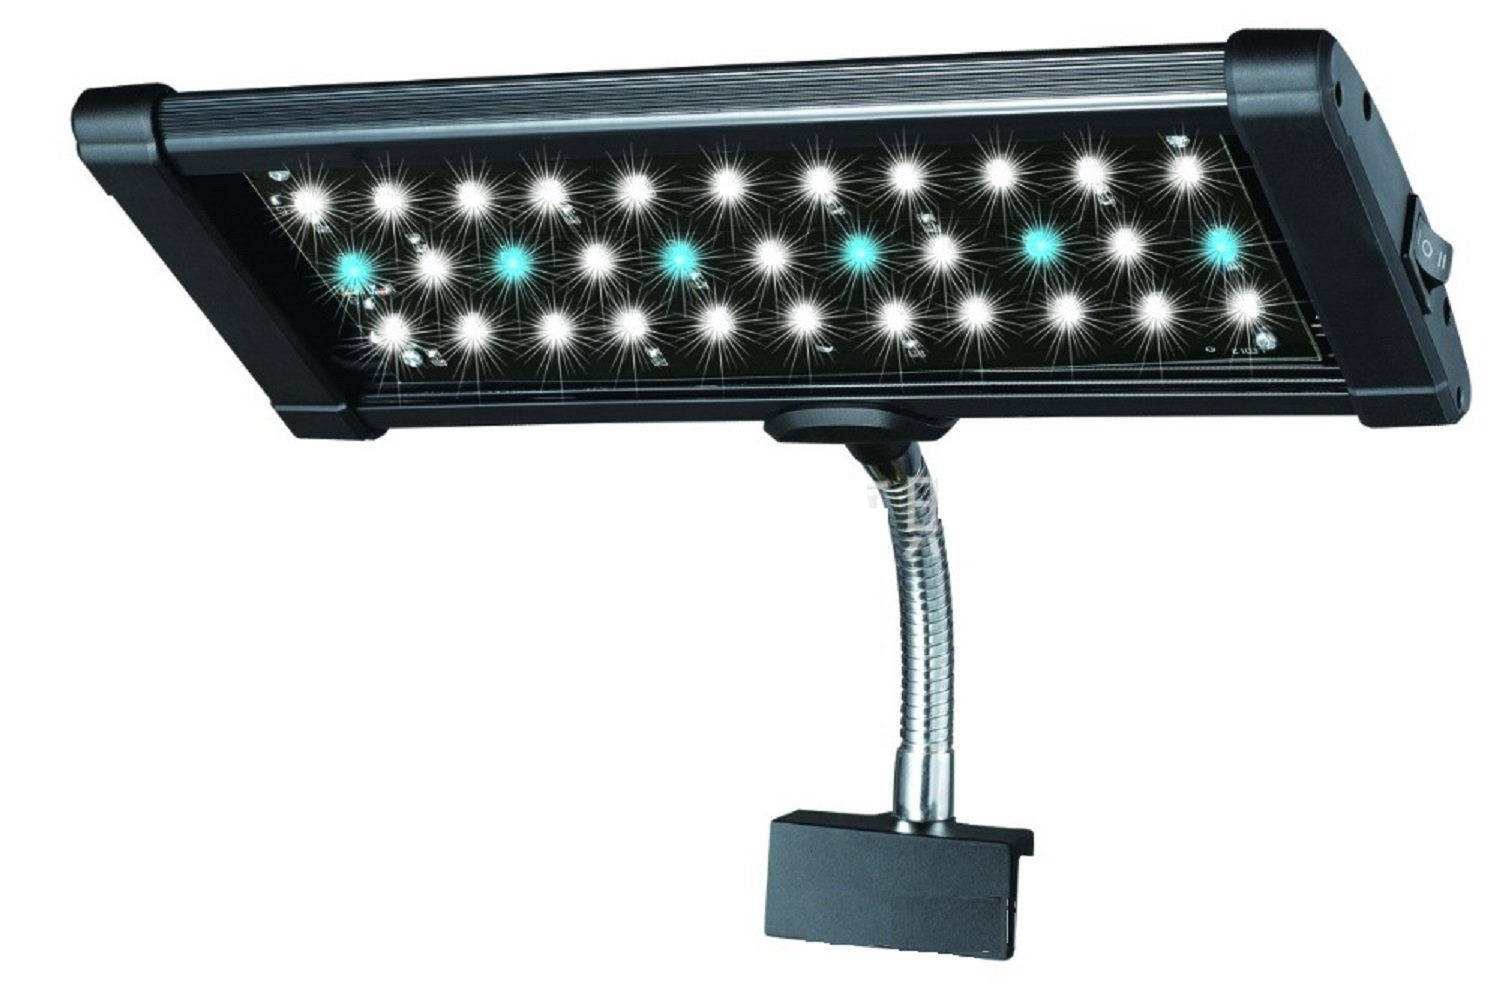 Plafoniera Grandi Dimensioni : Aql plafoniera super bright clip on led w amazon giardino